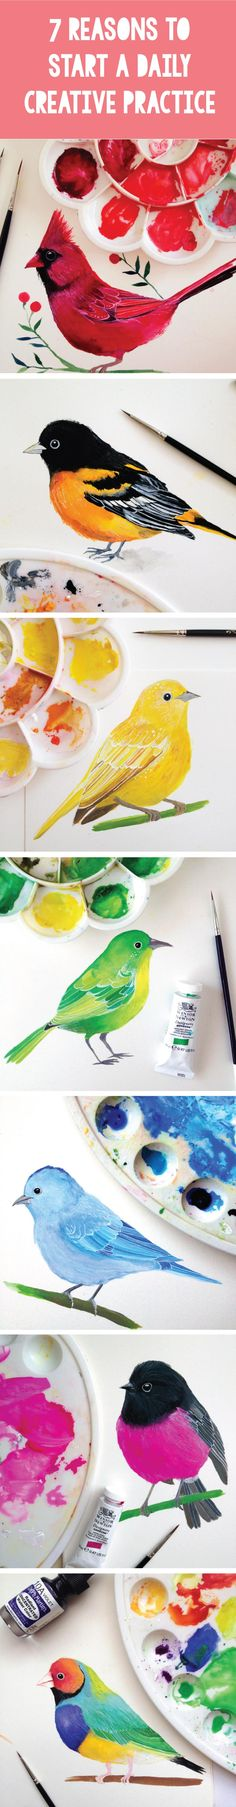 Daily painting creative practice - water-colour bird art by PRINTSPIRING